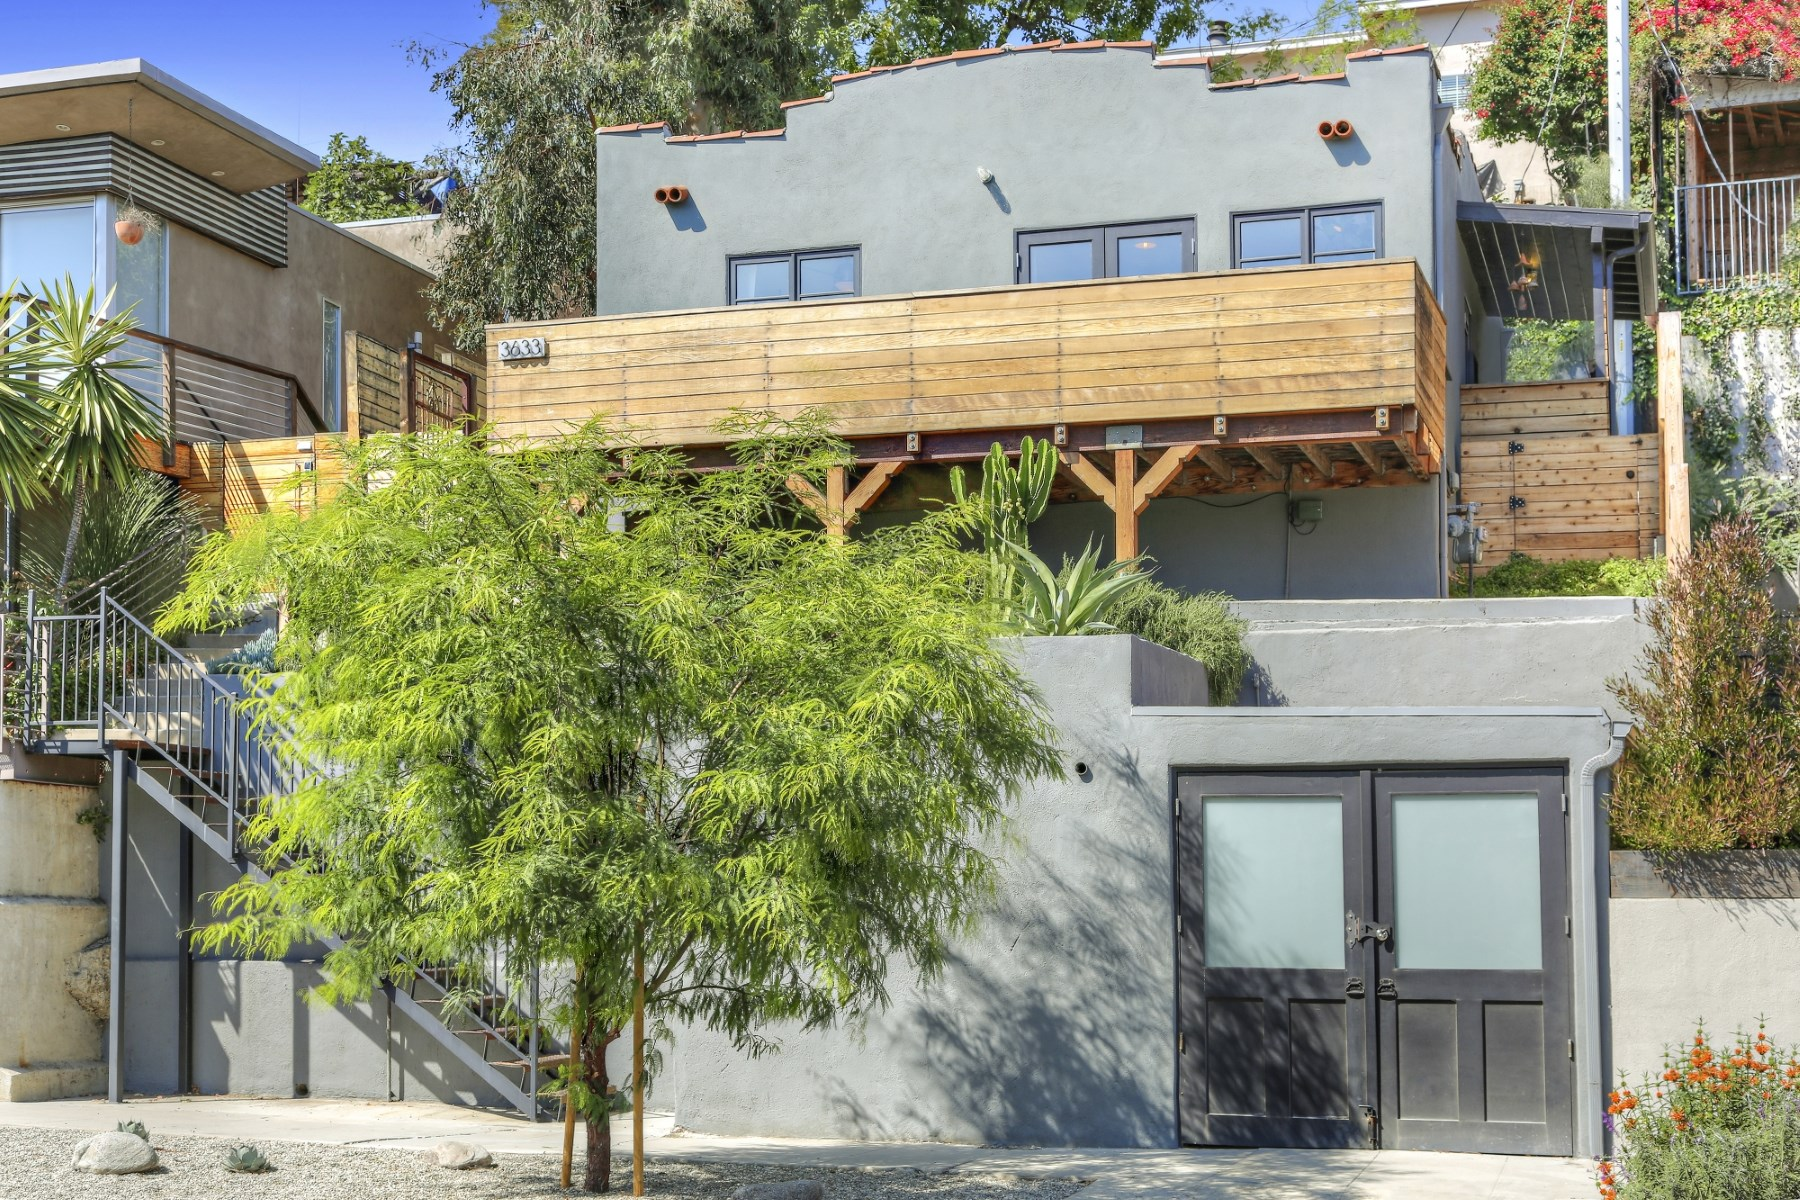 Single Family Home for Sale at 3633 Effie Street Silver Lake, Los Angeles, California, 90026 United States